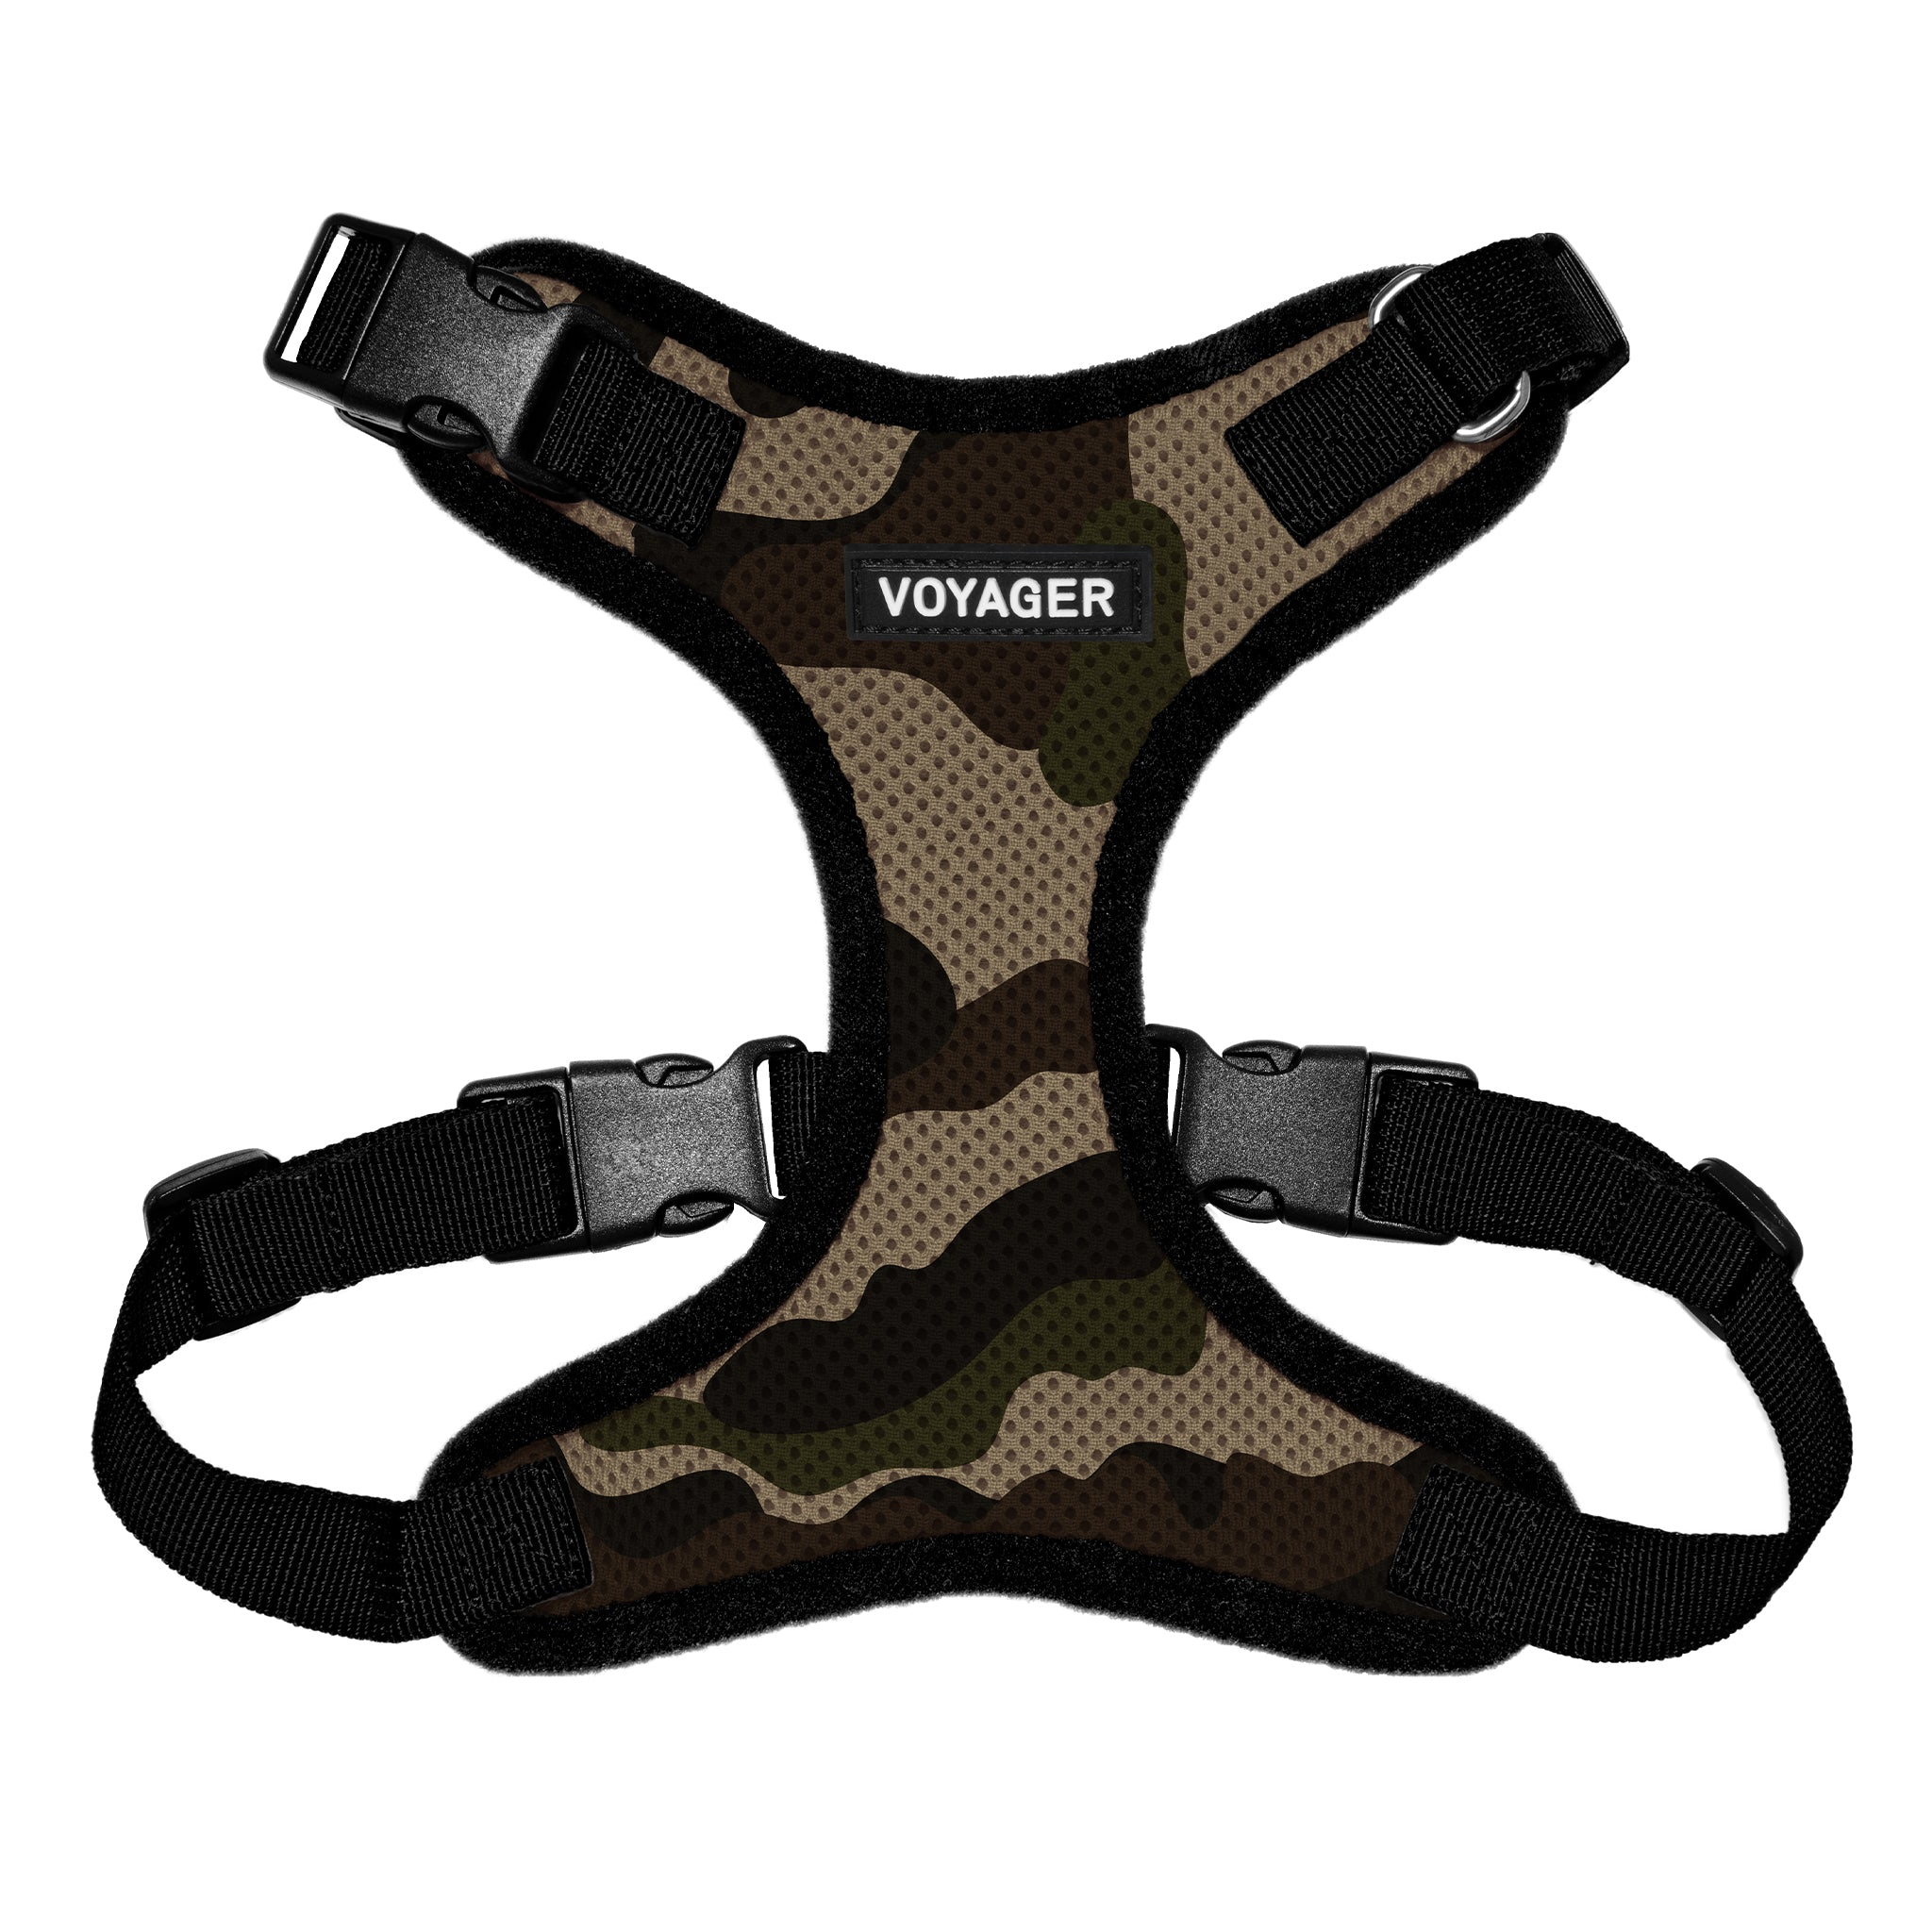 VOYAGER Step-In Lock Dog Harness in Camo with Black Trim and Webbing - Front